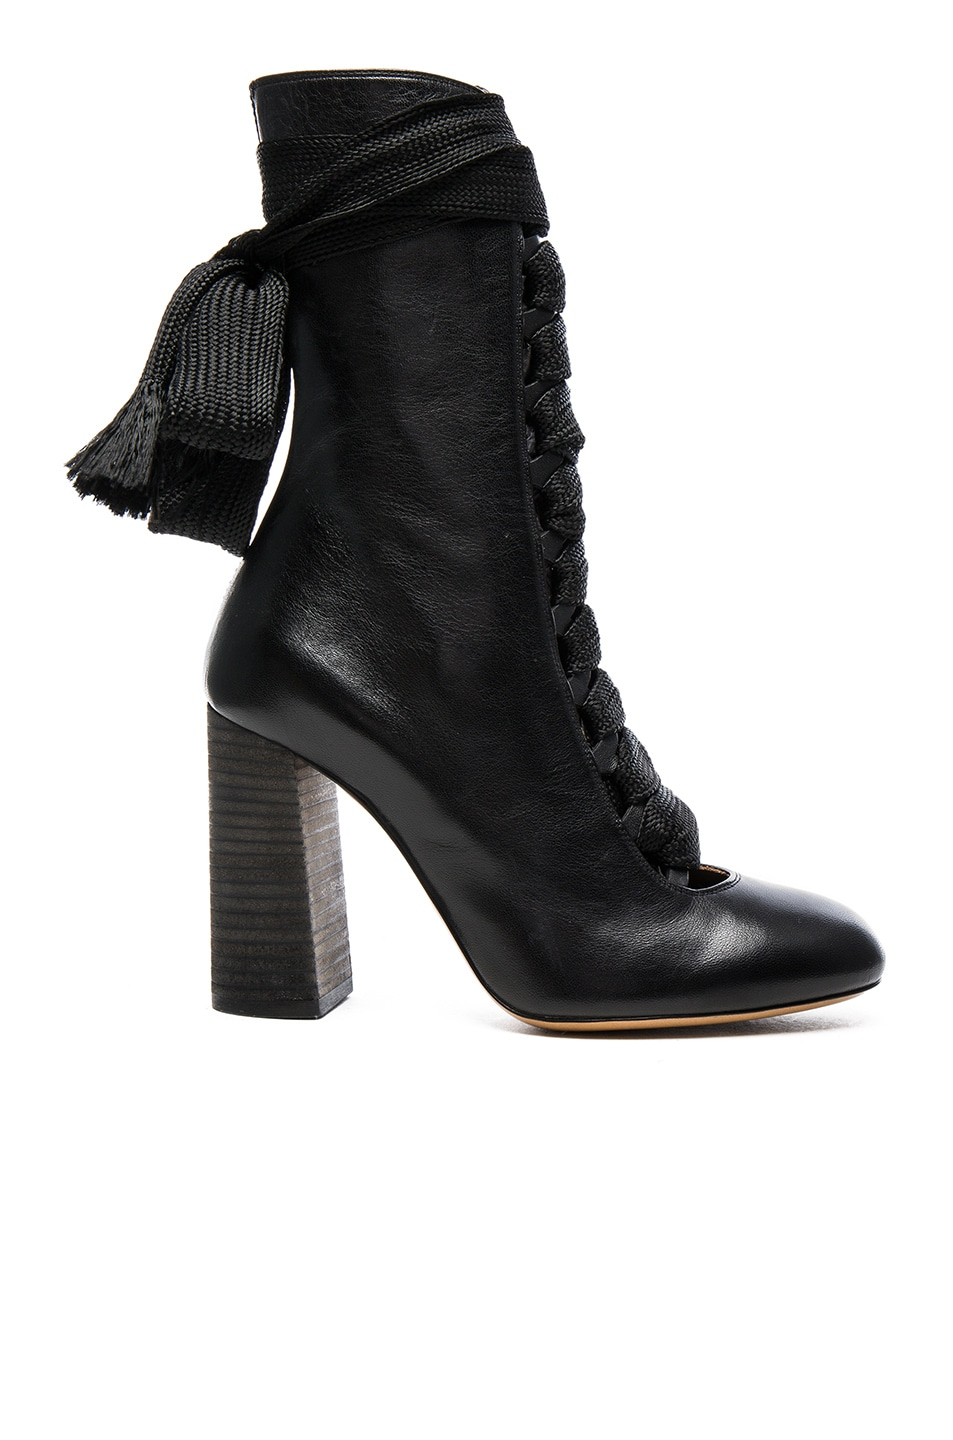 Image 1 of Chloe Lace Up Leather Boots in Black